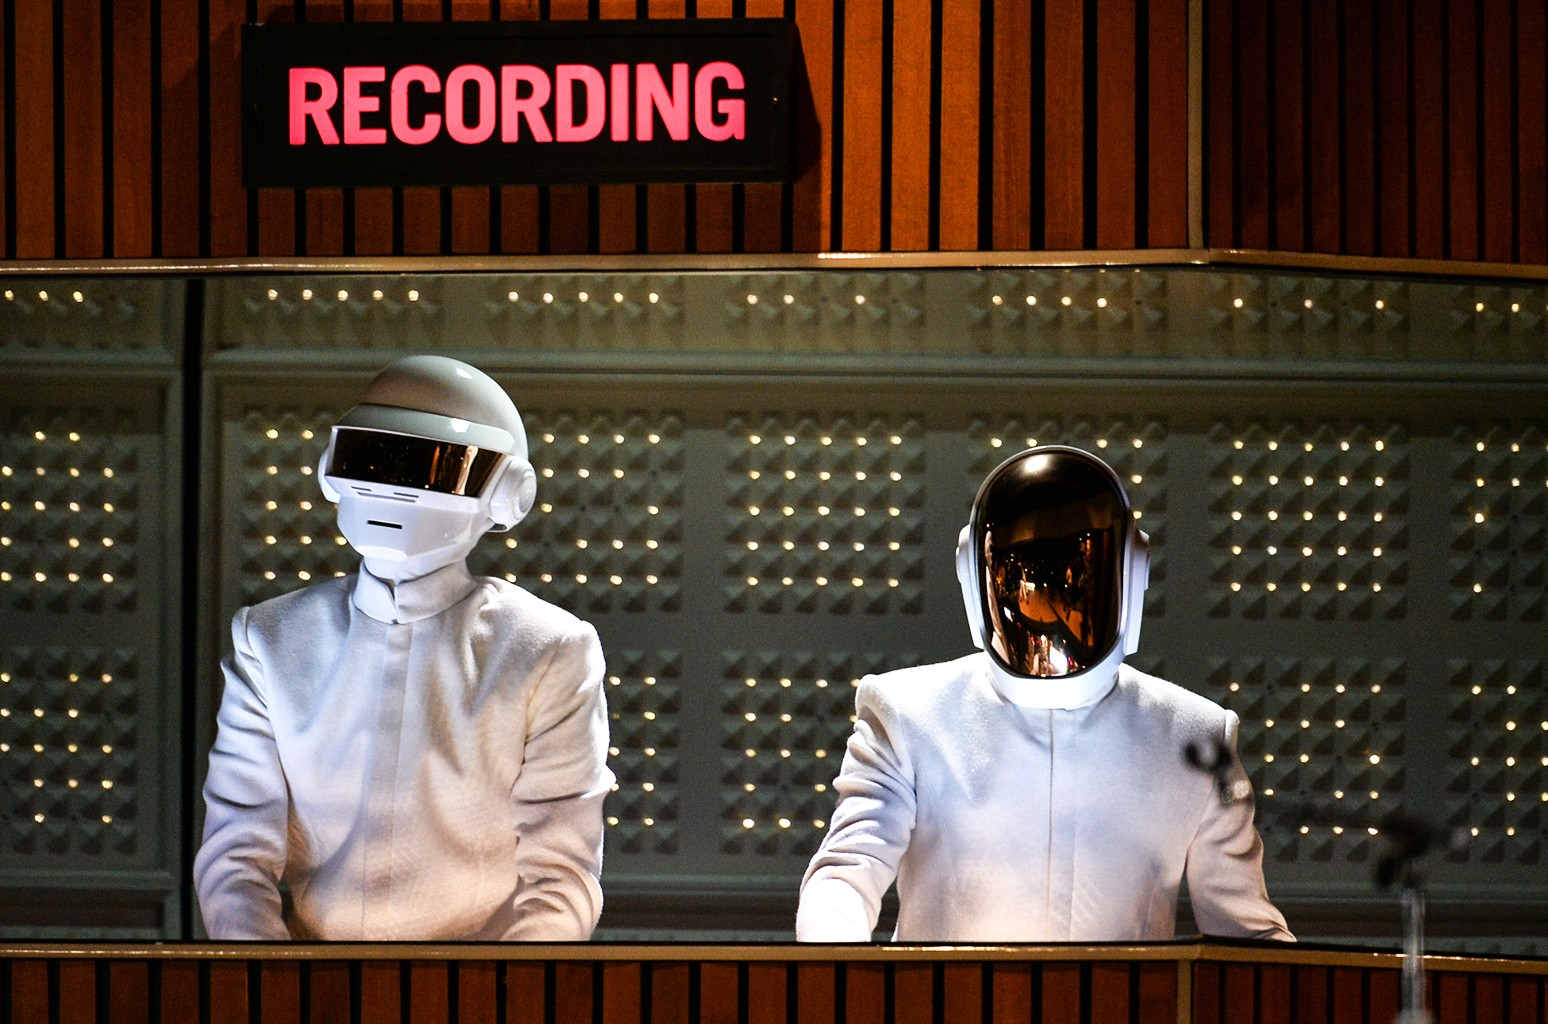 It's a Robot Christmas After All: Daft Punk Release 'Complete Edition' of 'Tron: Legacy' Soundtrack